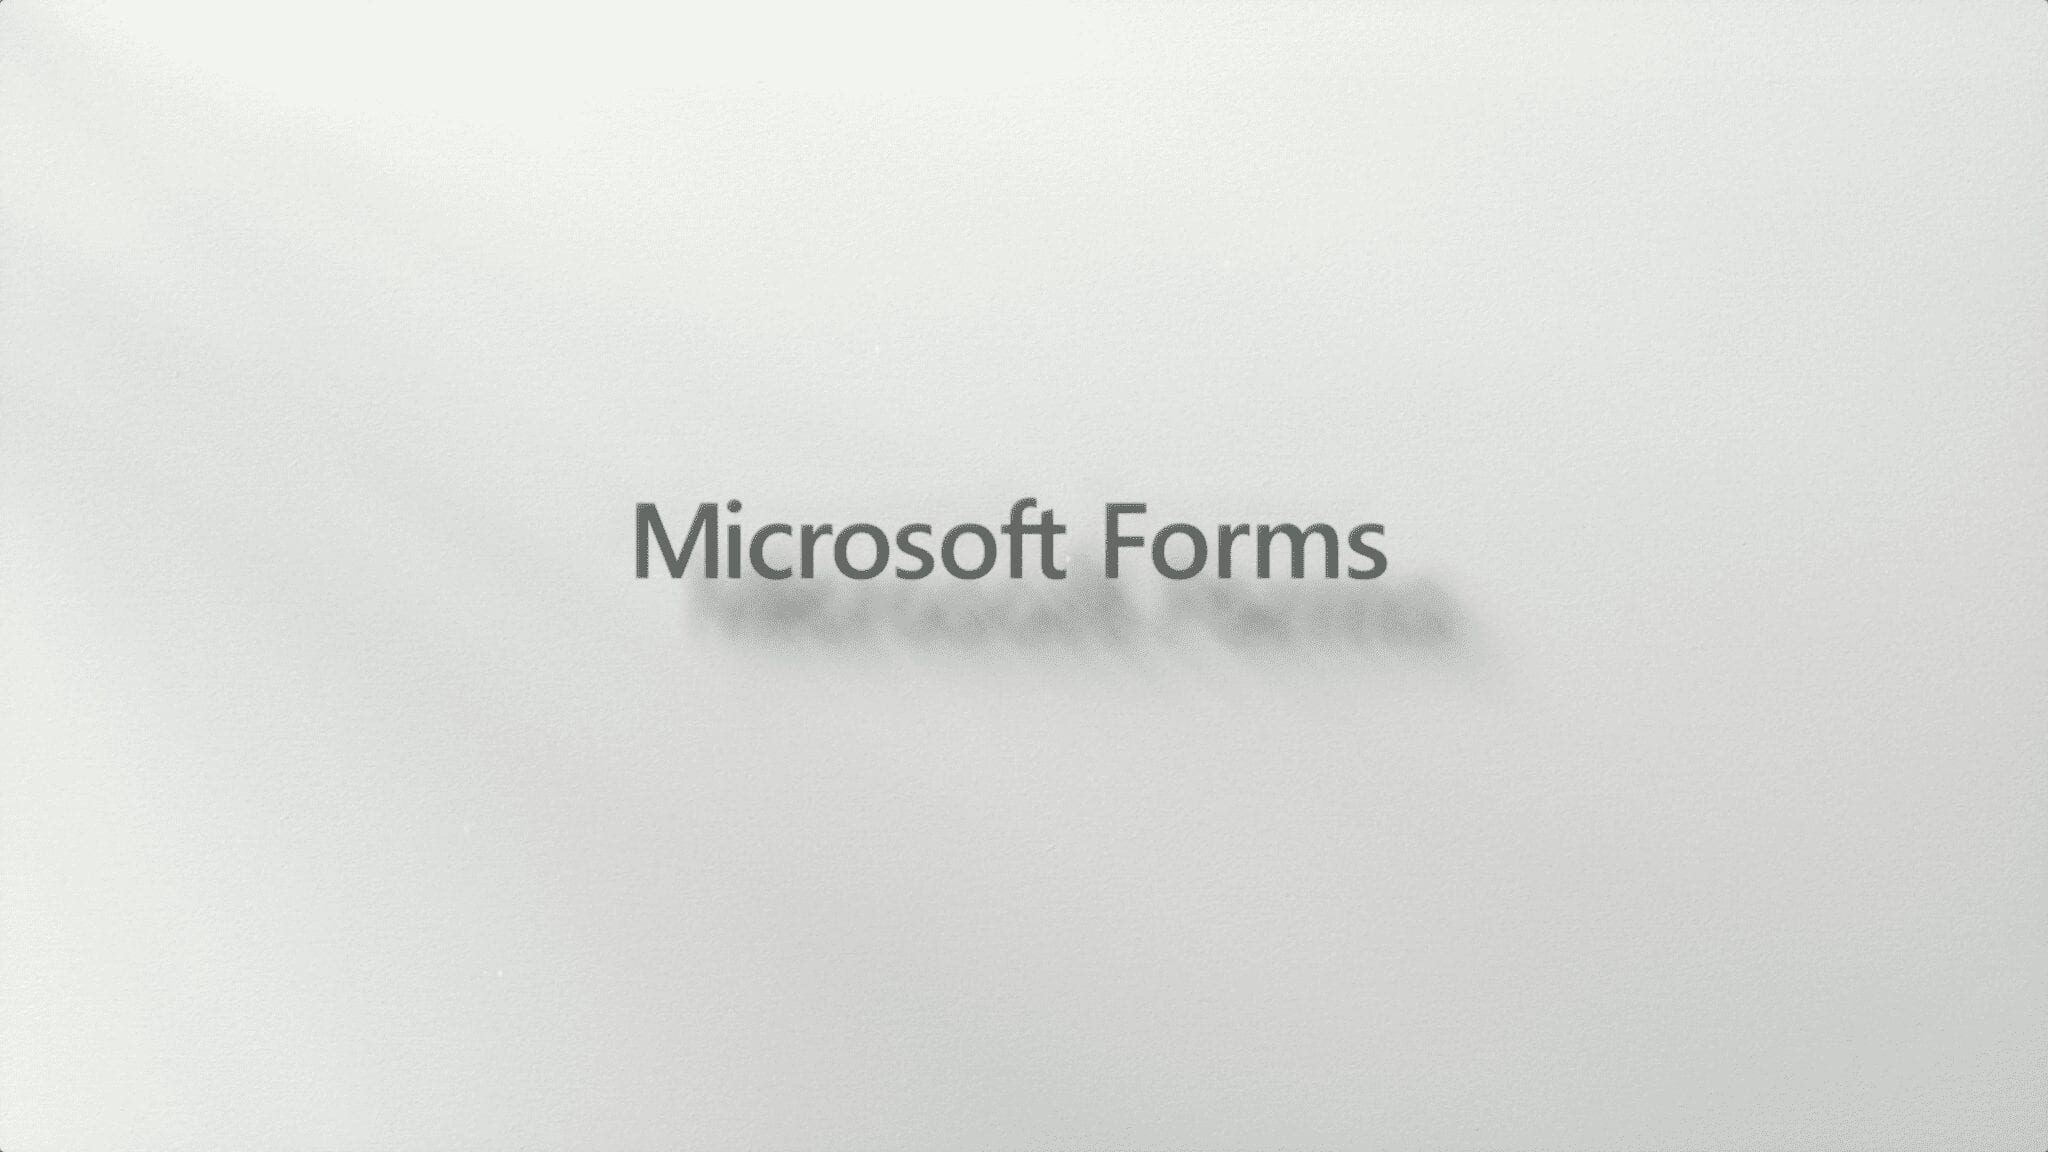 MS_Forms_04